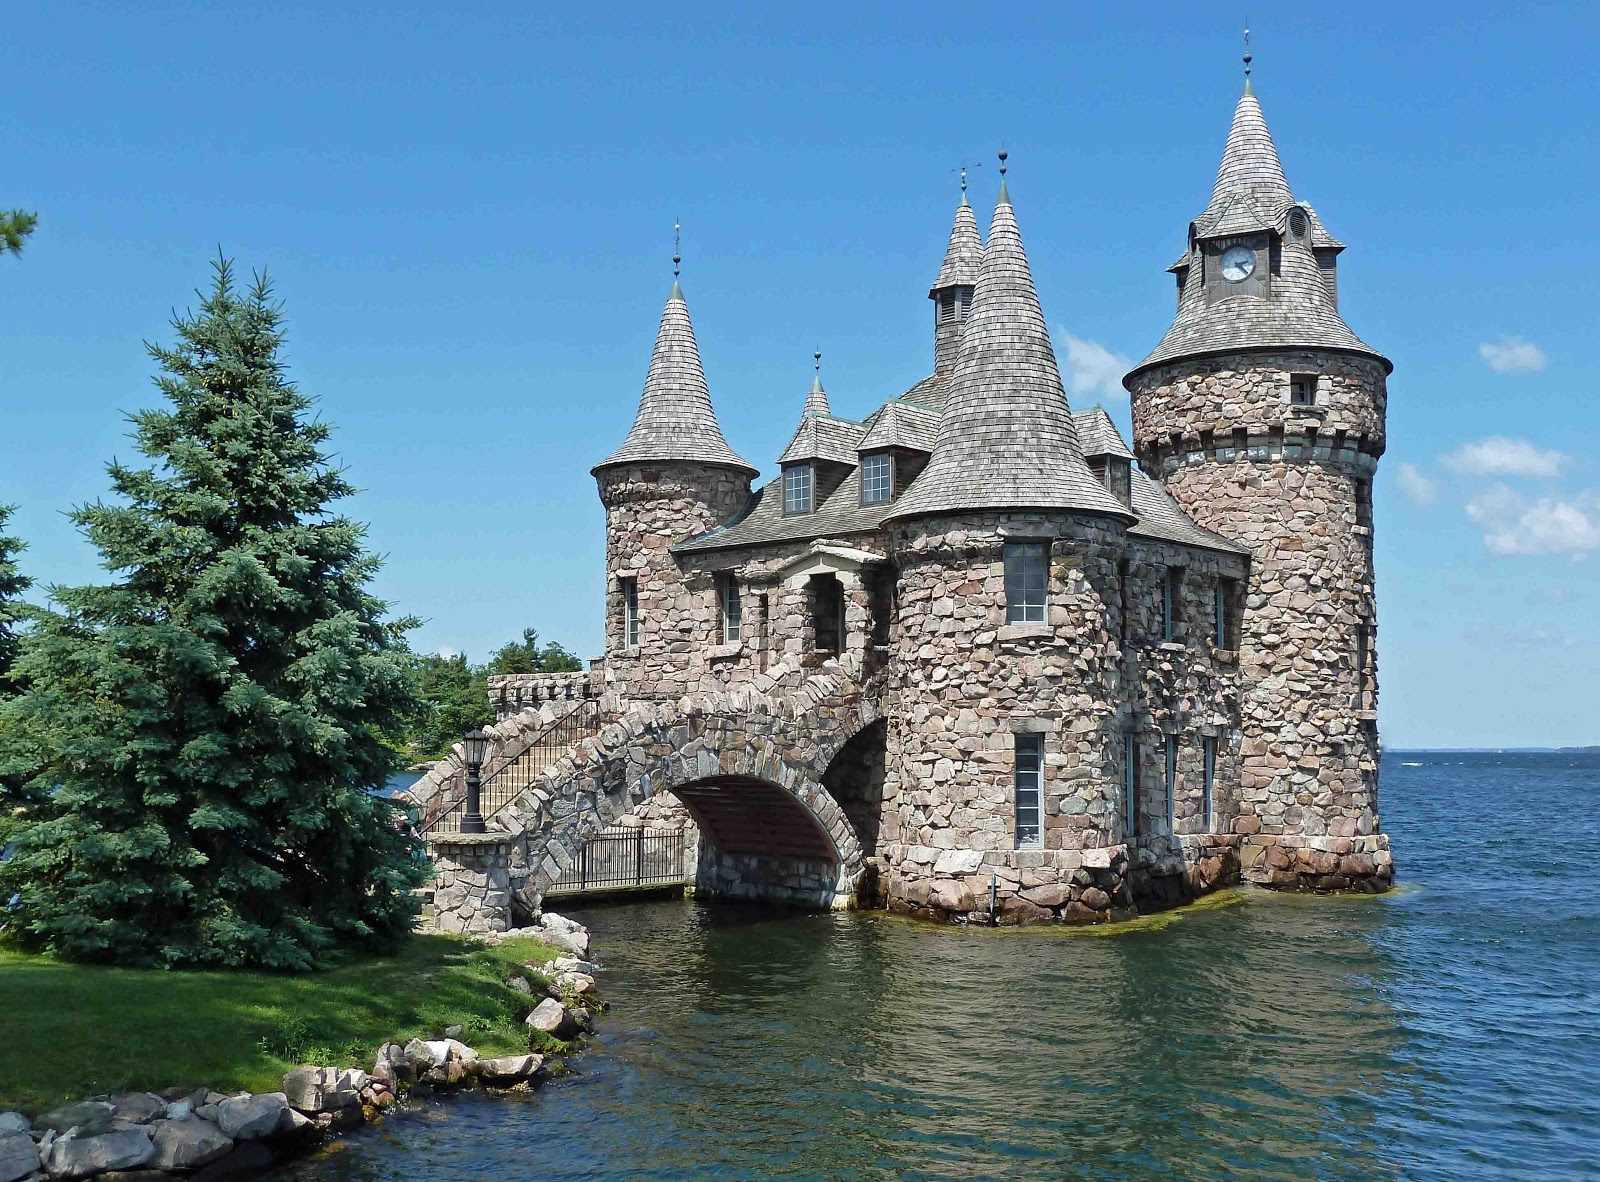 Last dance boldt castle heart island 1000 islands for Small castle house